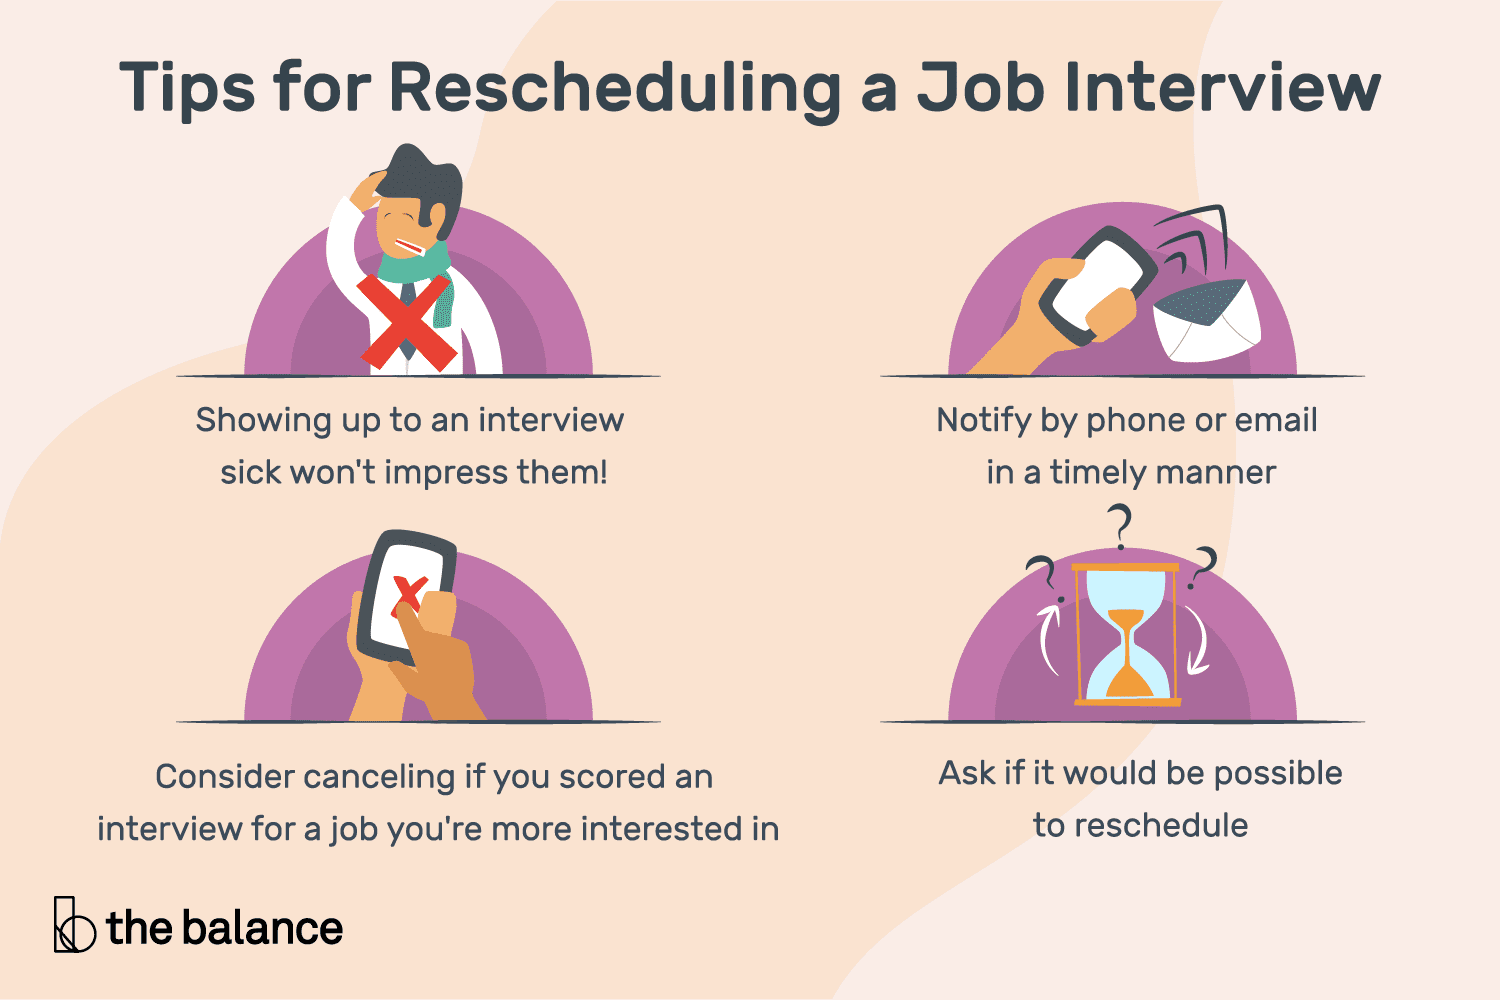 How to Reschedule a Job Interview